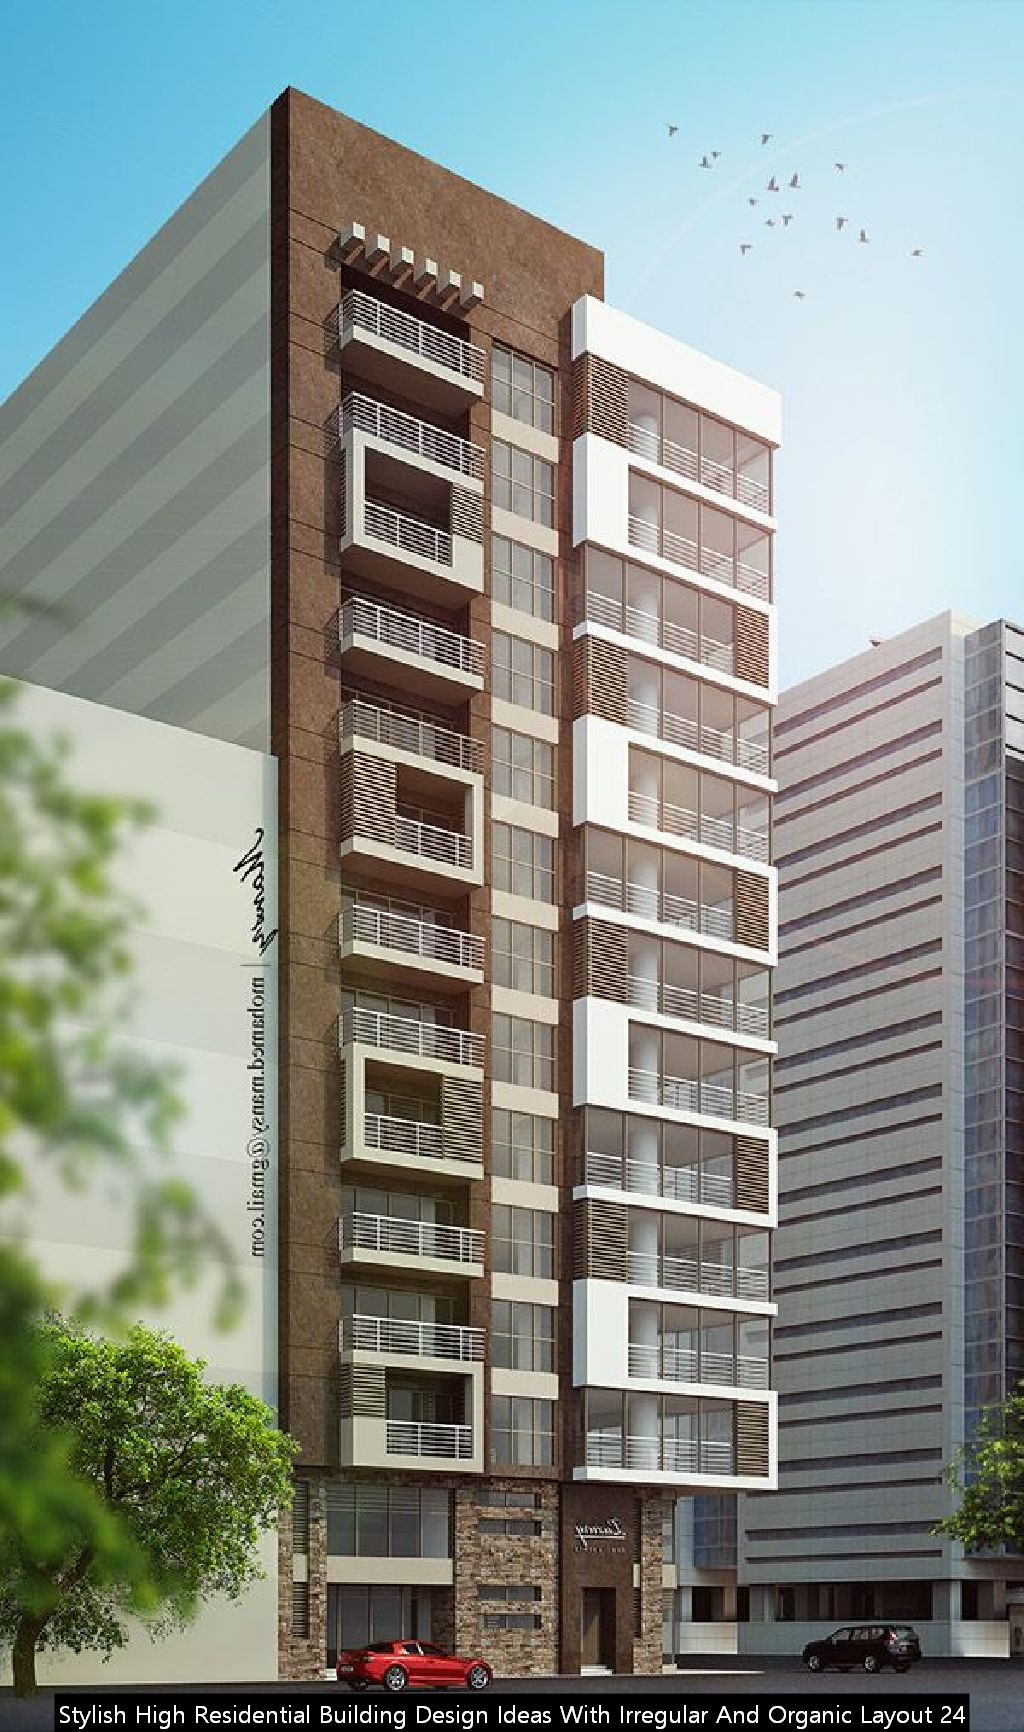 Stylish High Residential Building Design Ideas With Irregular And Organic Layout 24